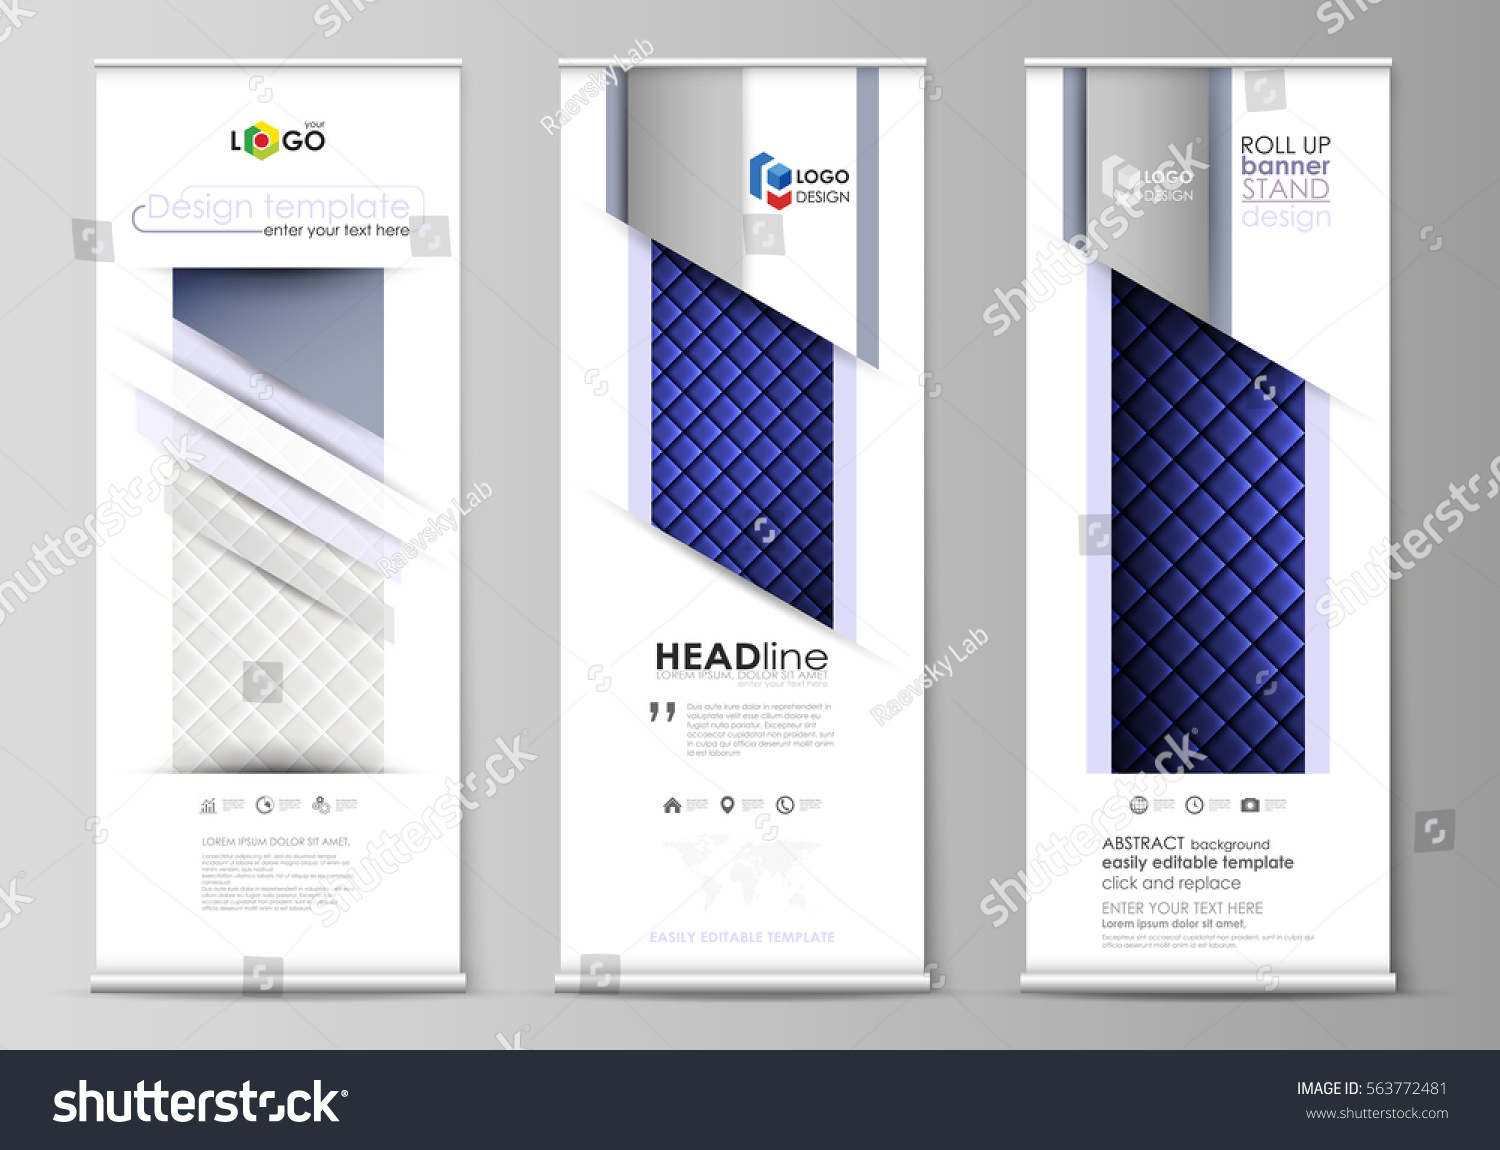 roll banner stands flat design templates stock vector 563772481